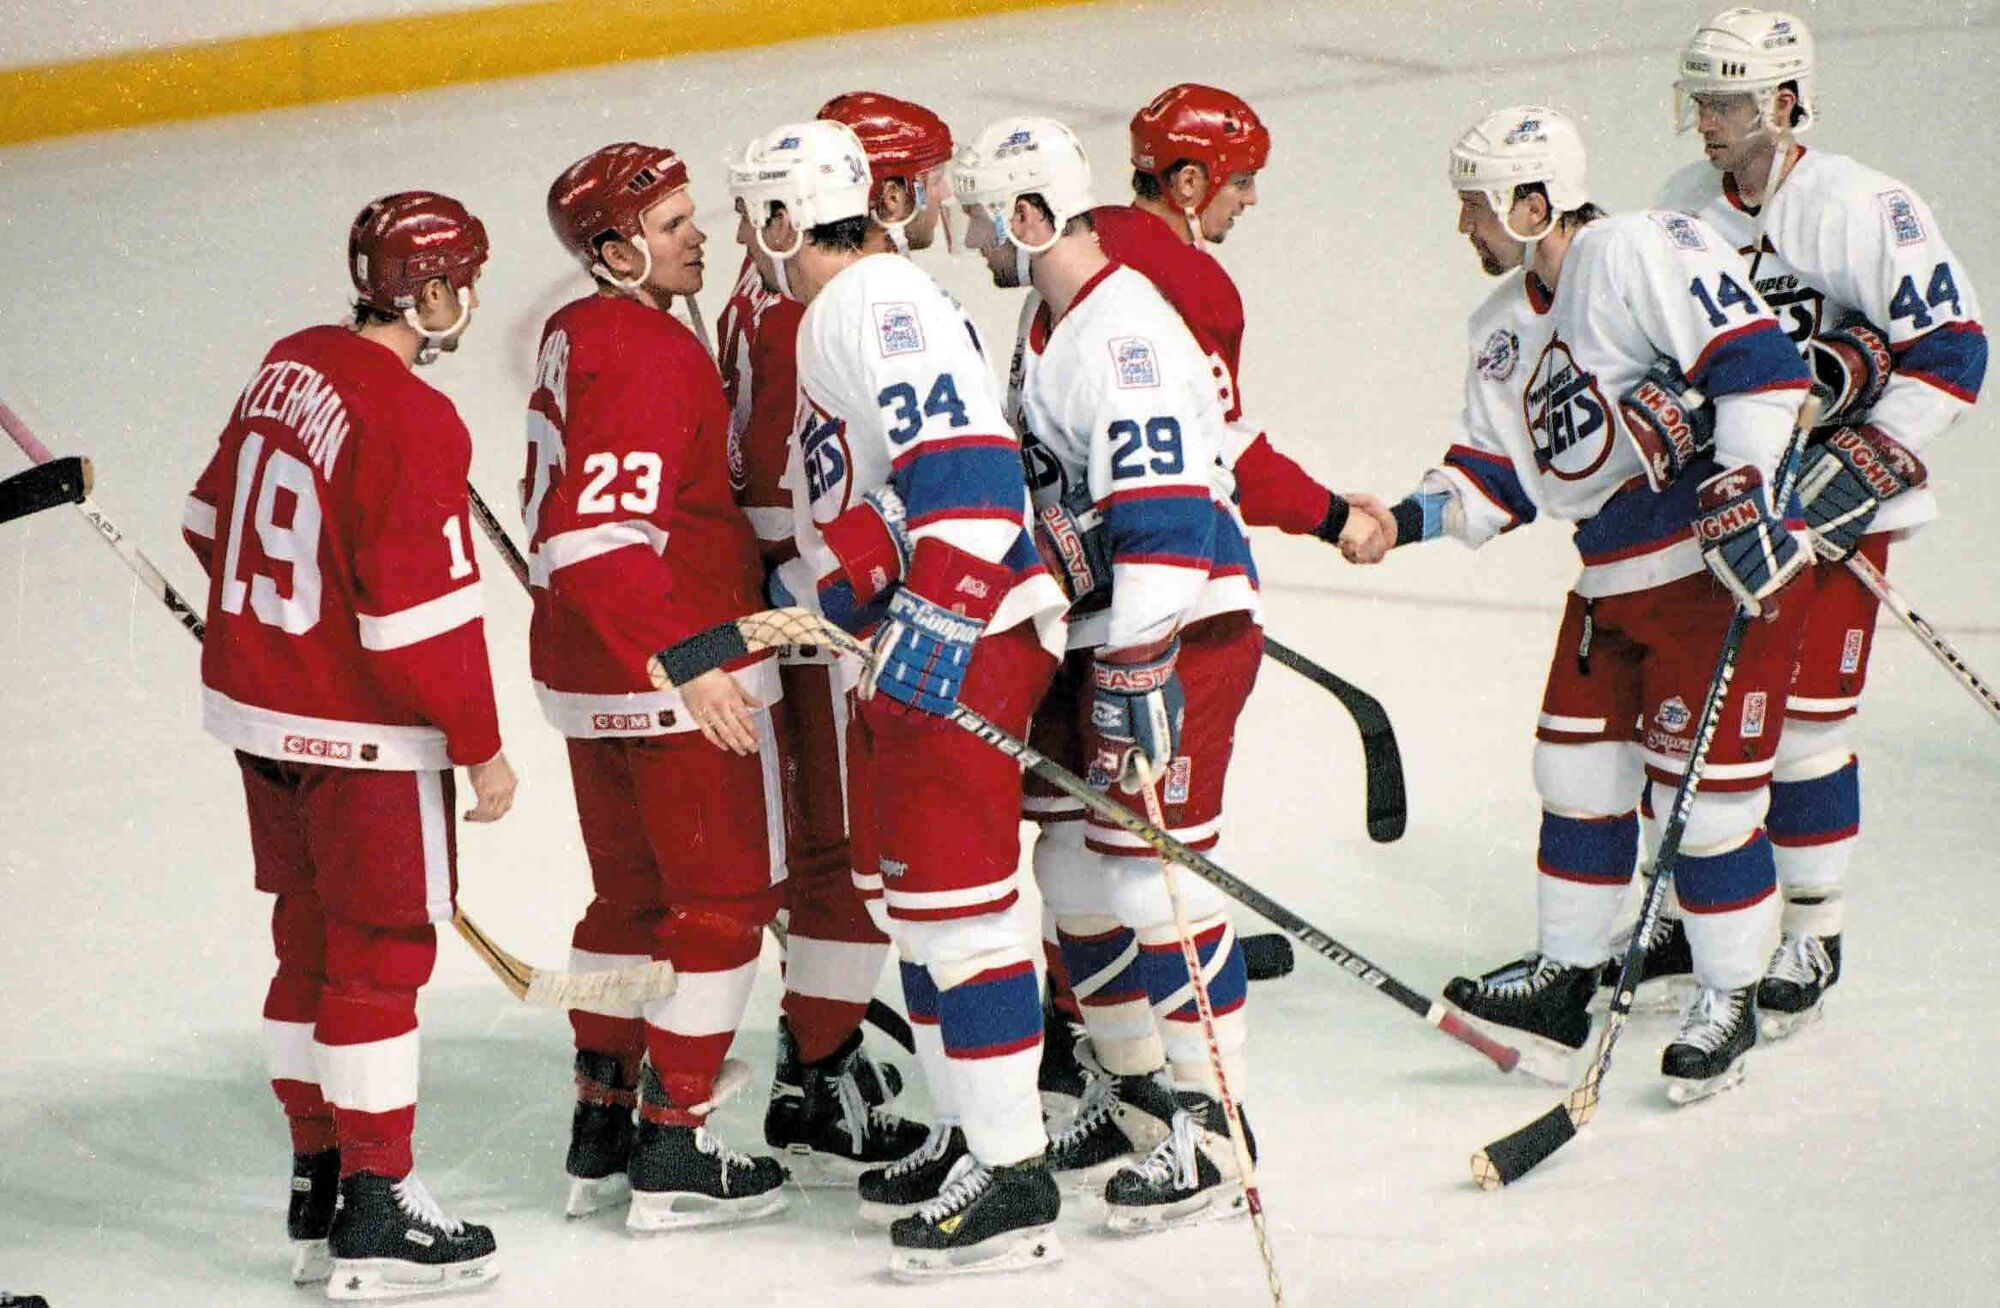 The final handshake between the Jets and Red Wings.